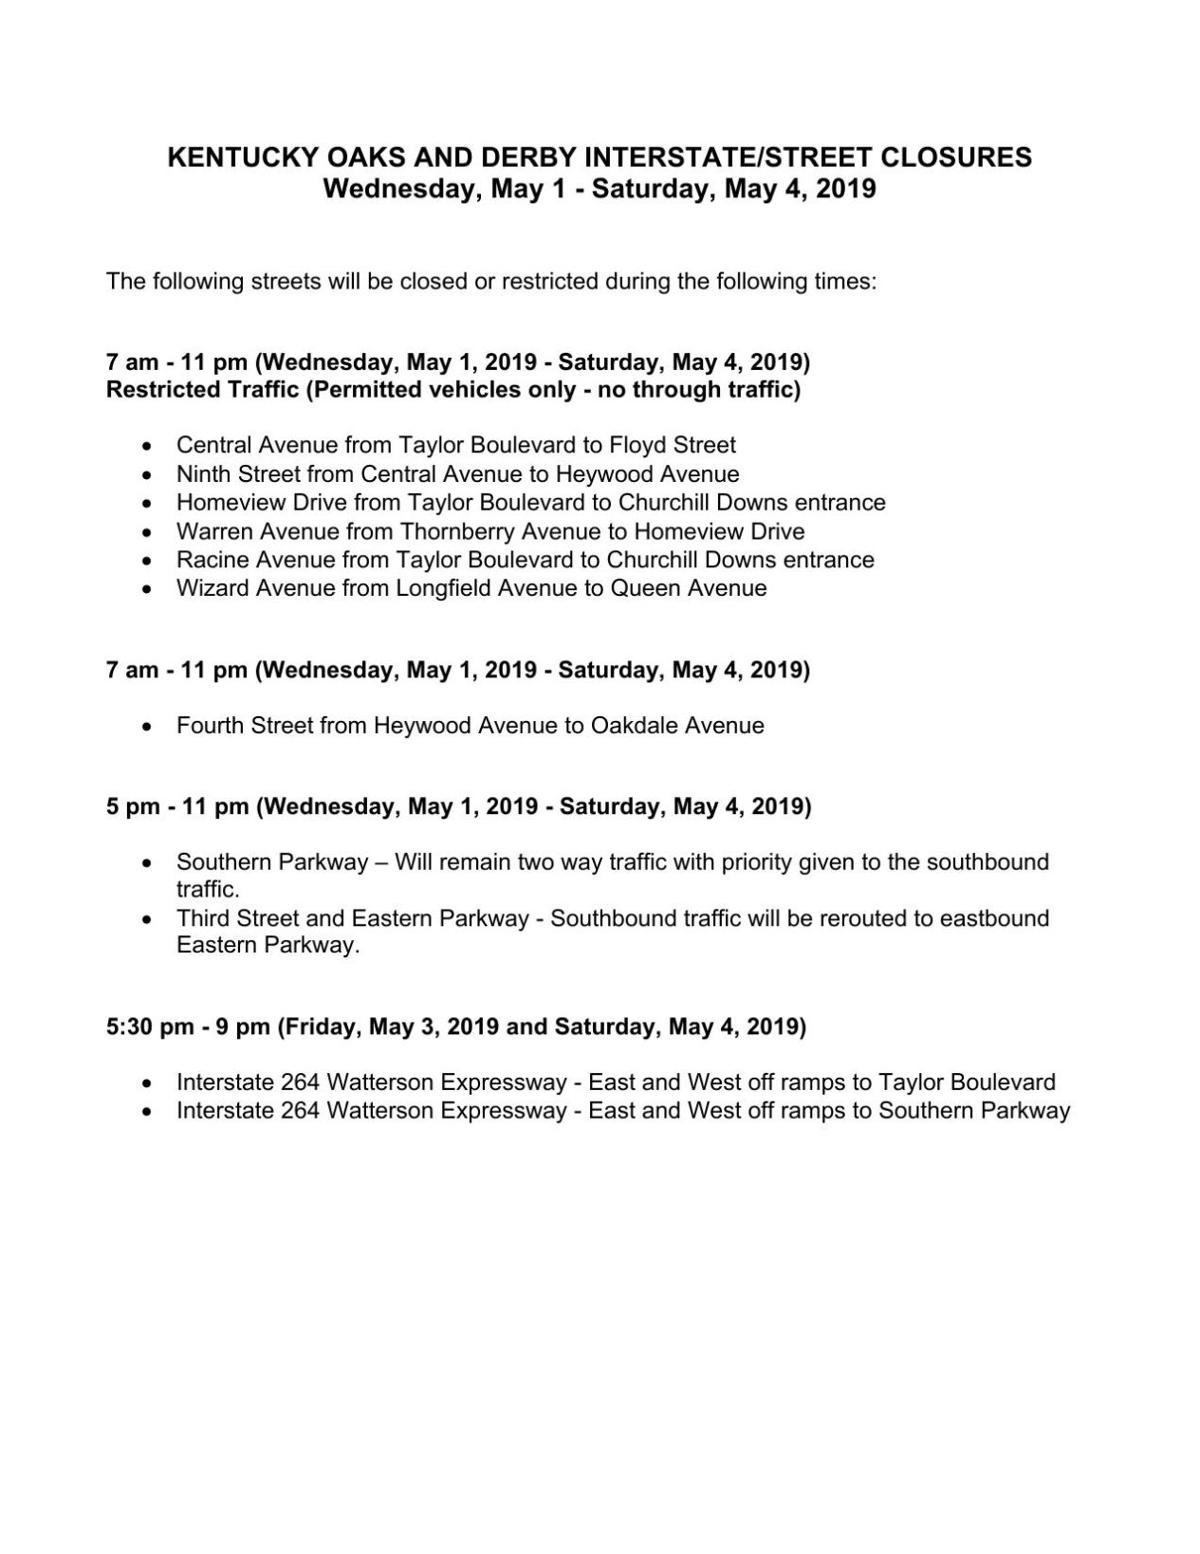 2019 Oaks and Derby street closures